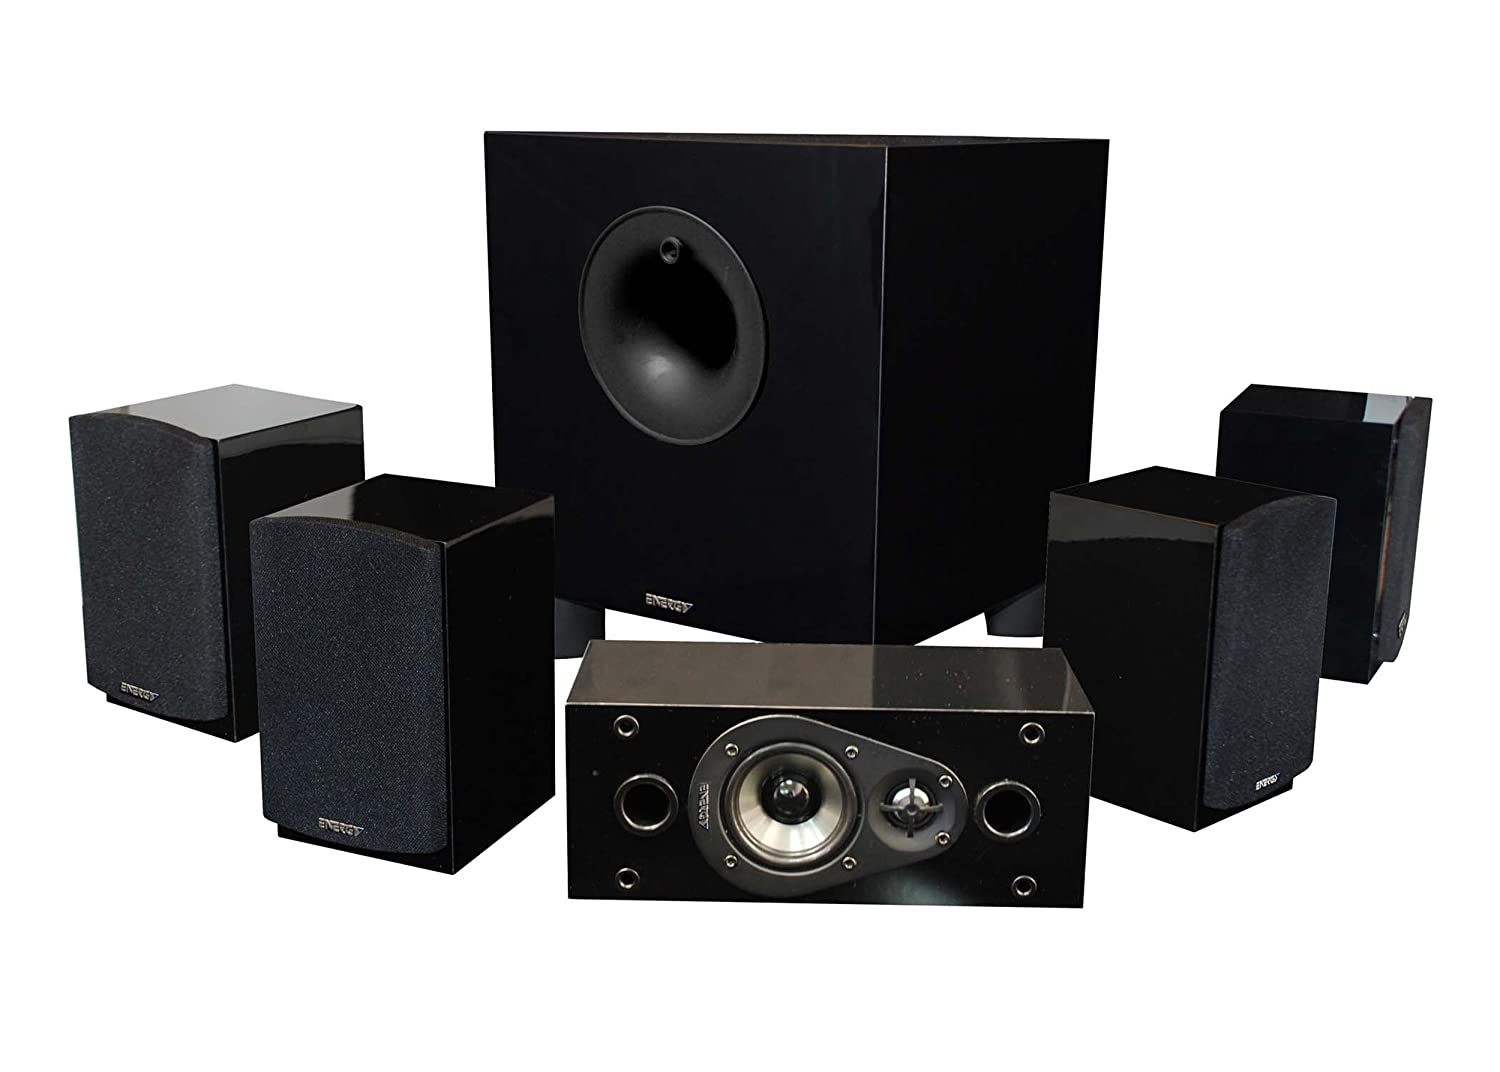 Energy 5.1 Take Classic Home Theater System (Set of Six, Black) $299.99